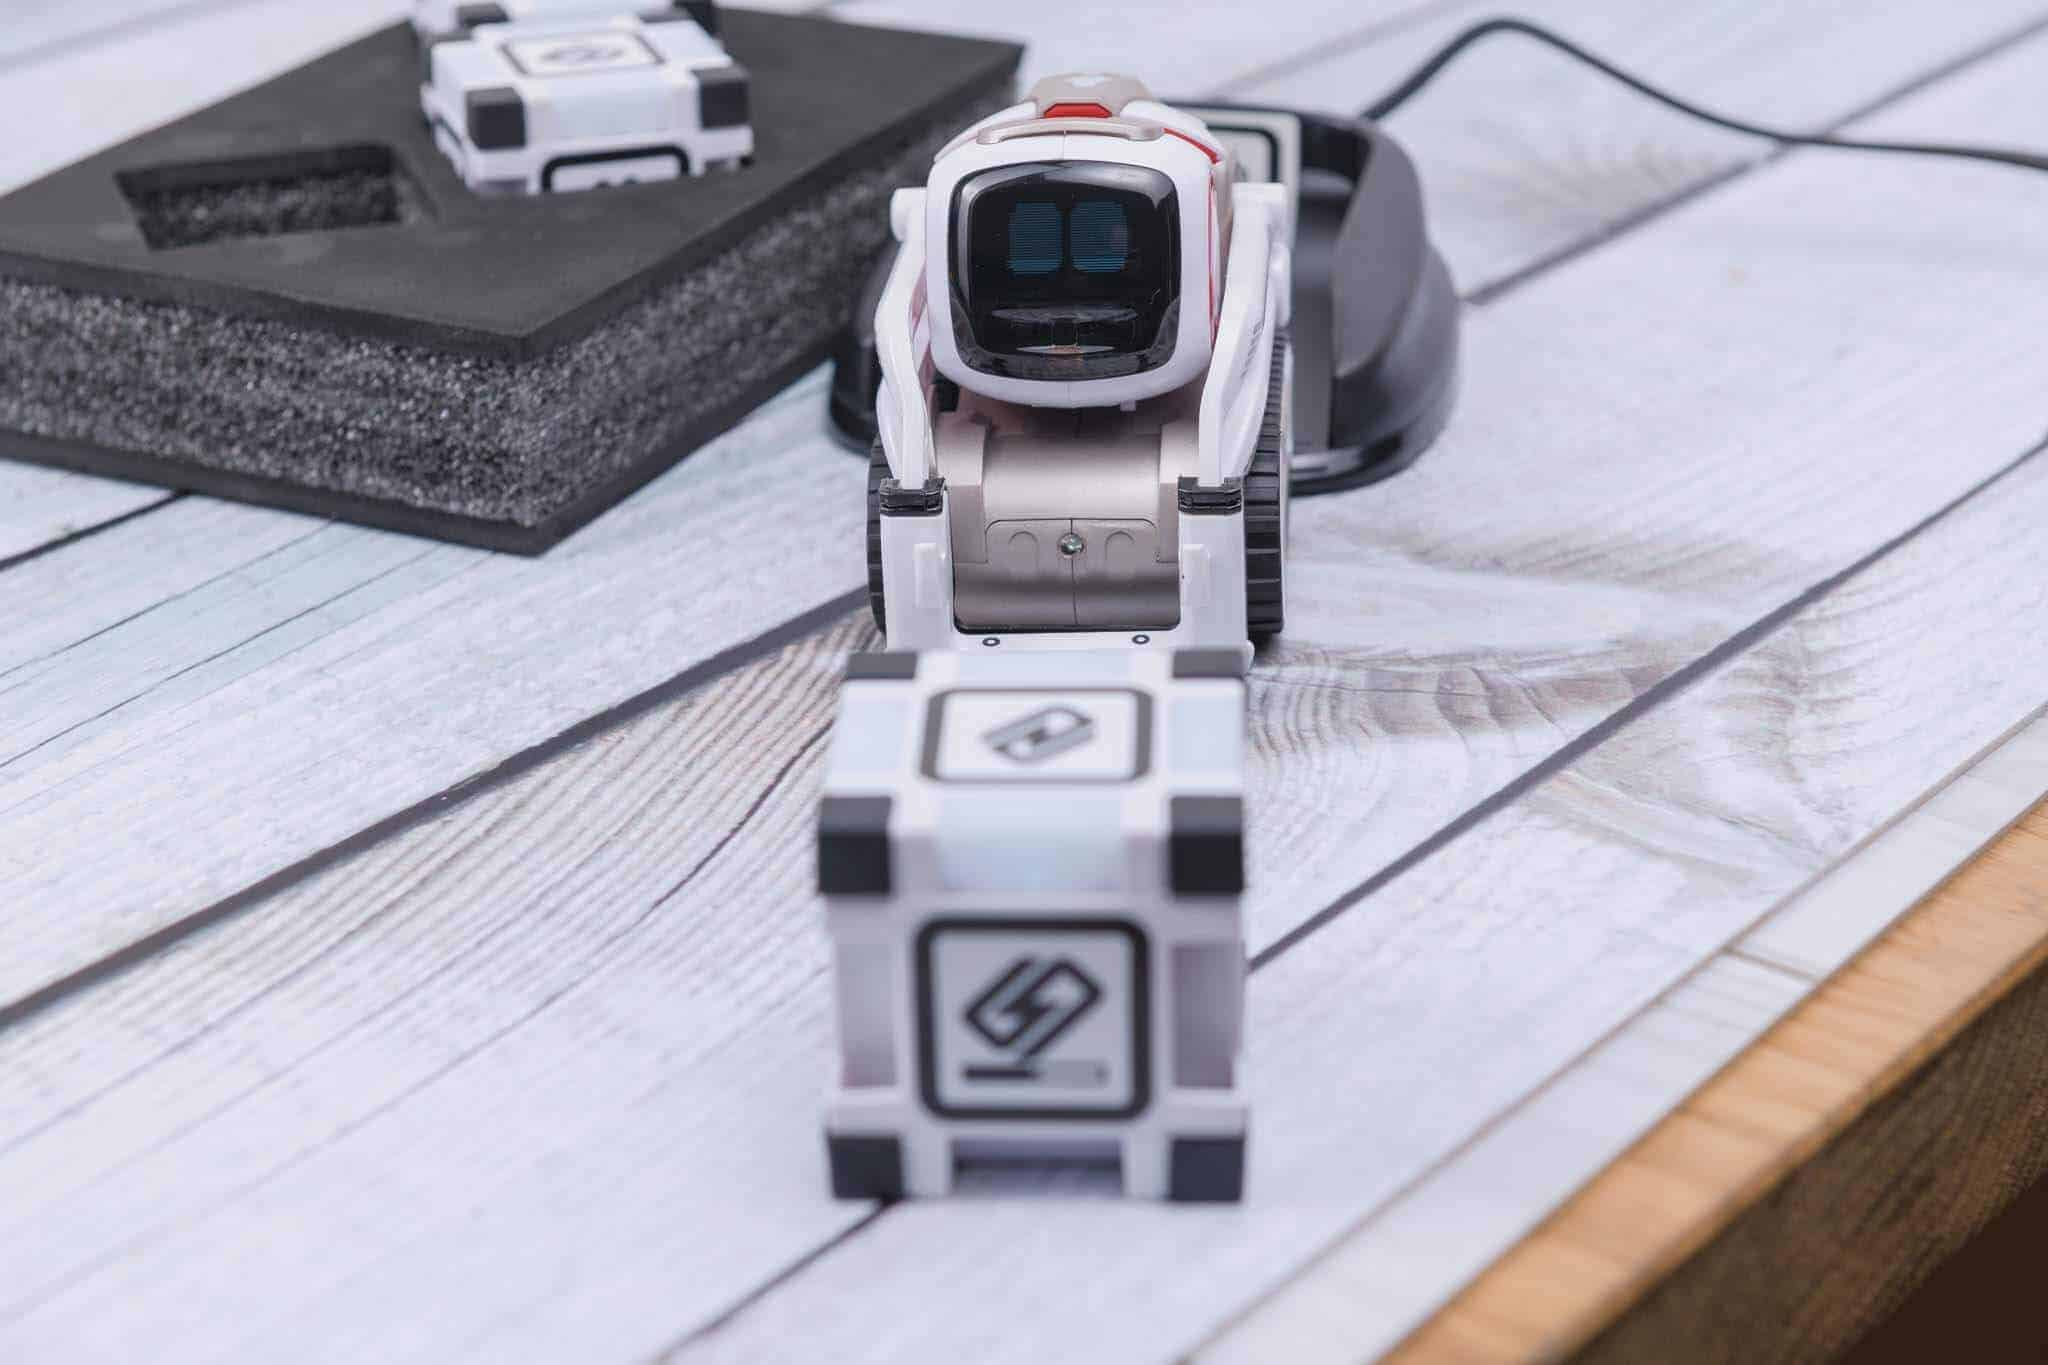 Anki Cozmo Robot Review - Looking for the Cube